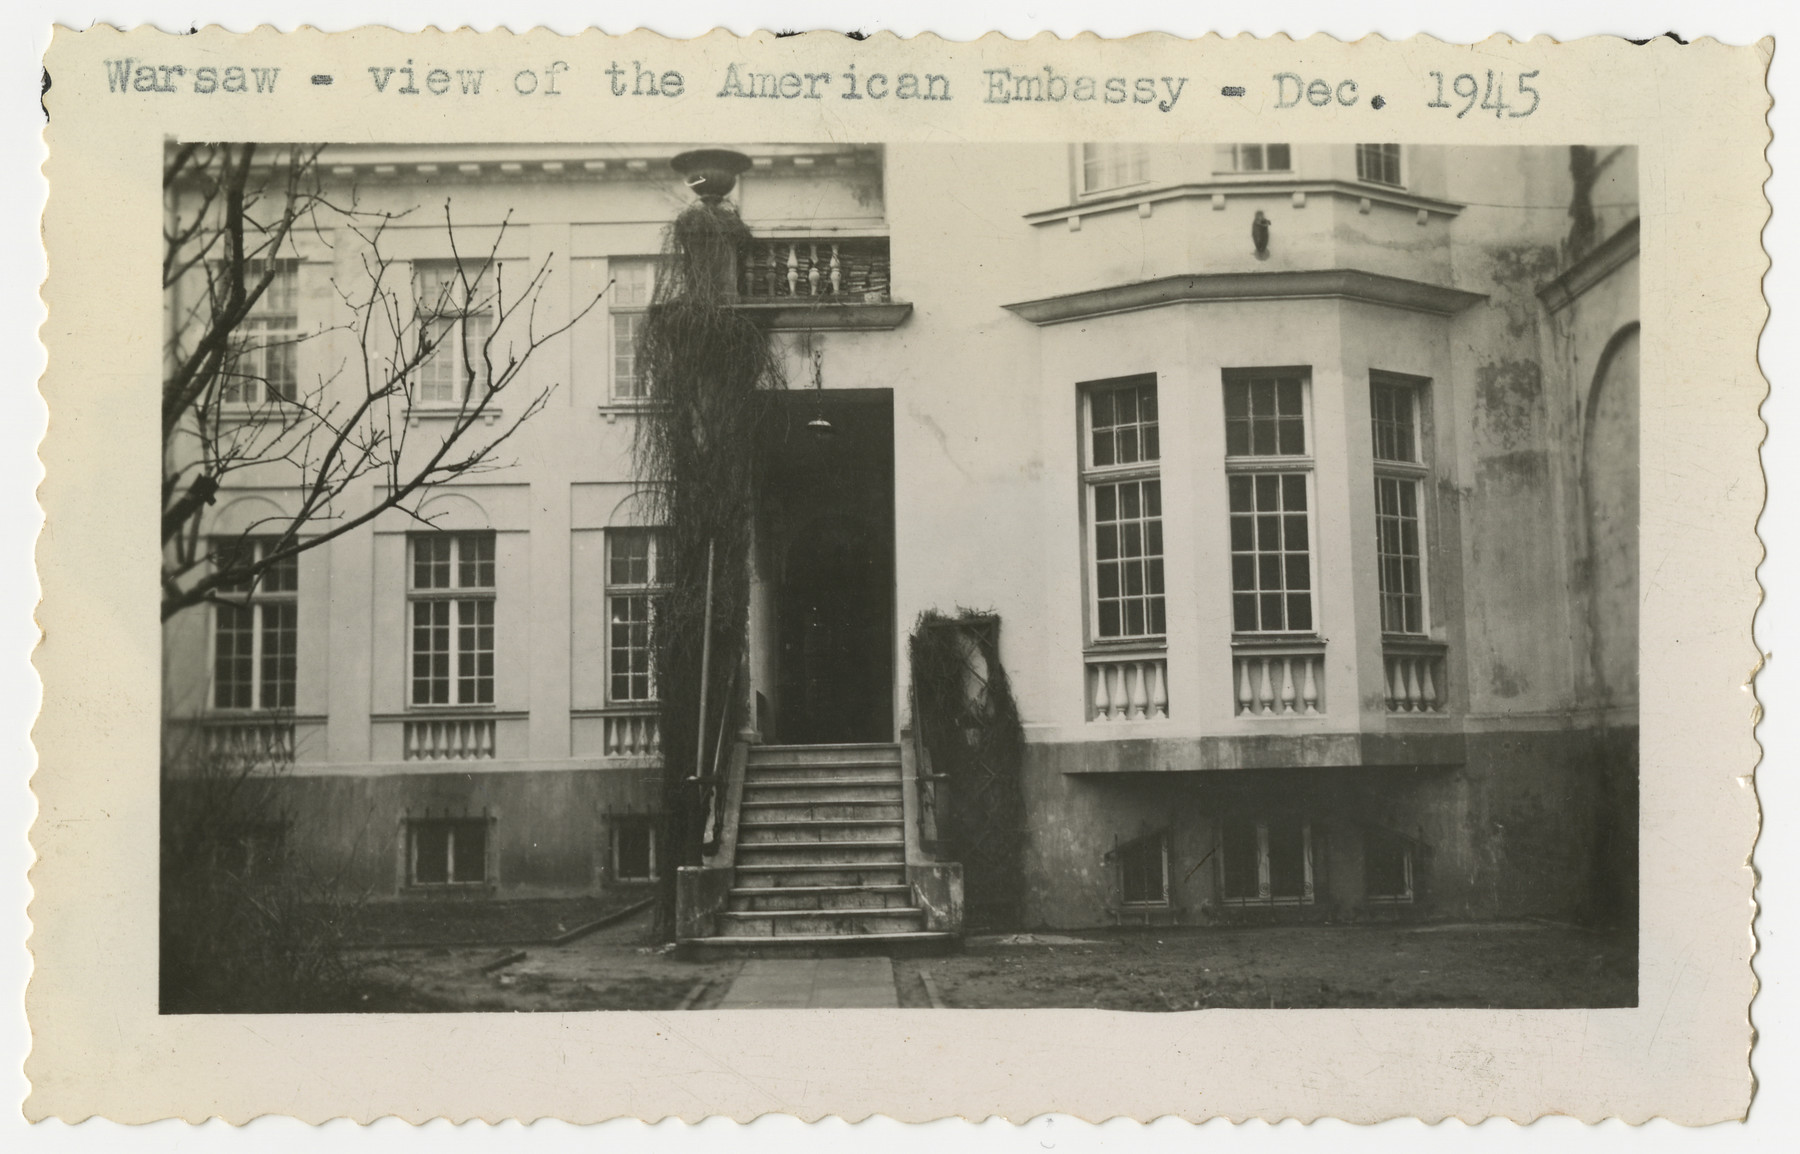 View of the American Embassy in Warsaw.